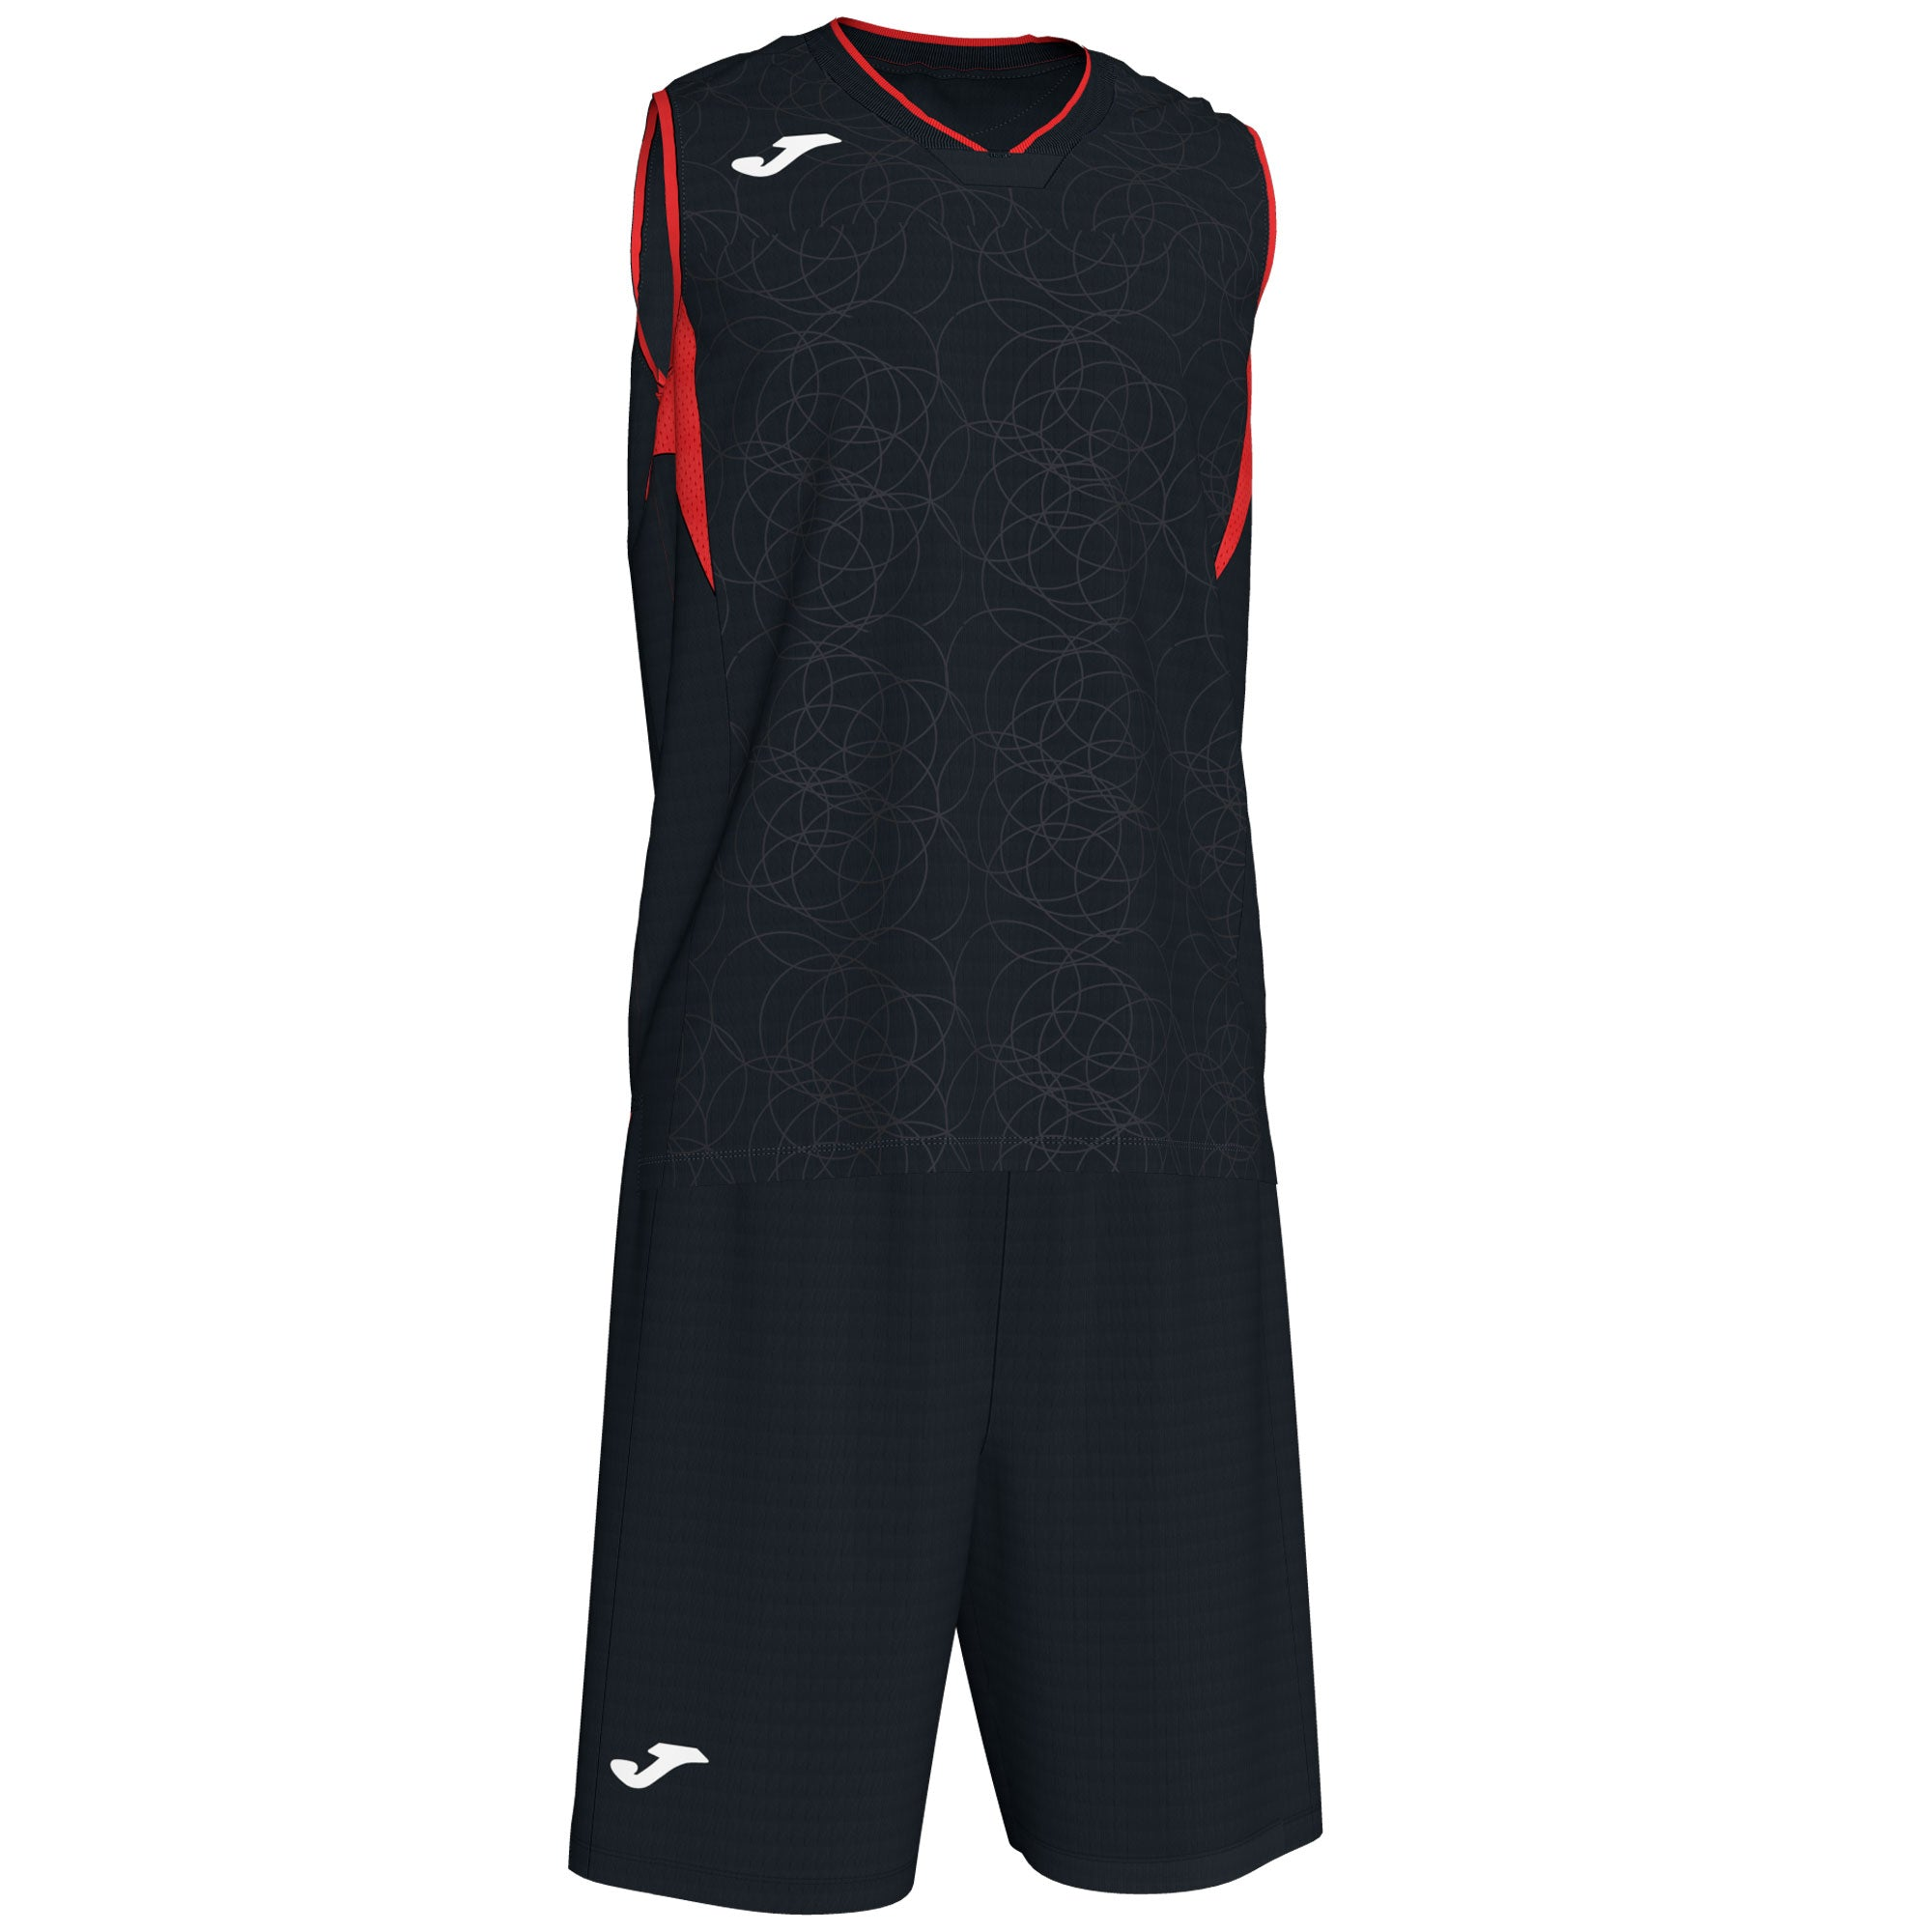 Teamwear - Joma Campus Kit - Black/Red - JO-101373-106